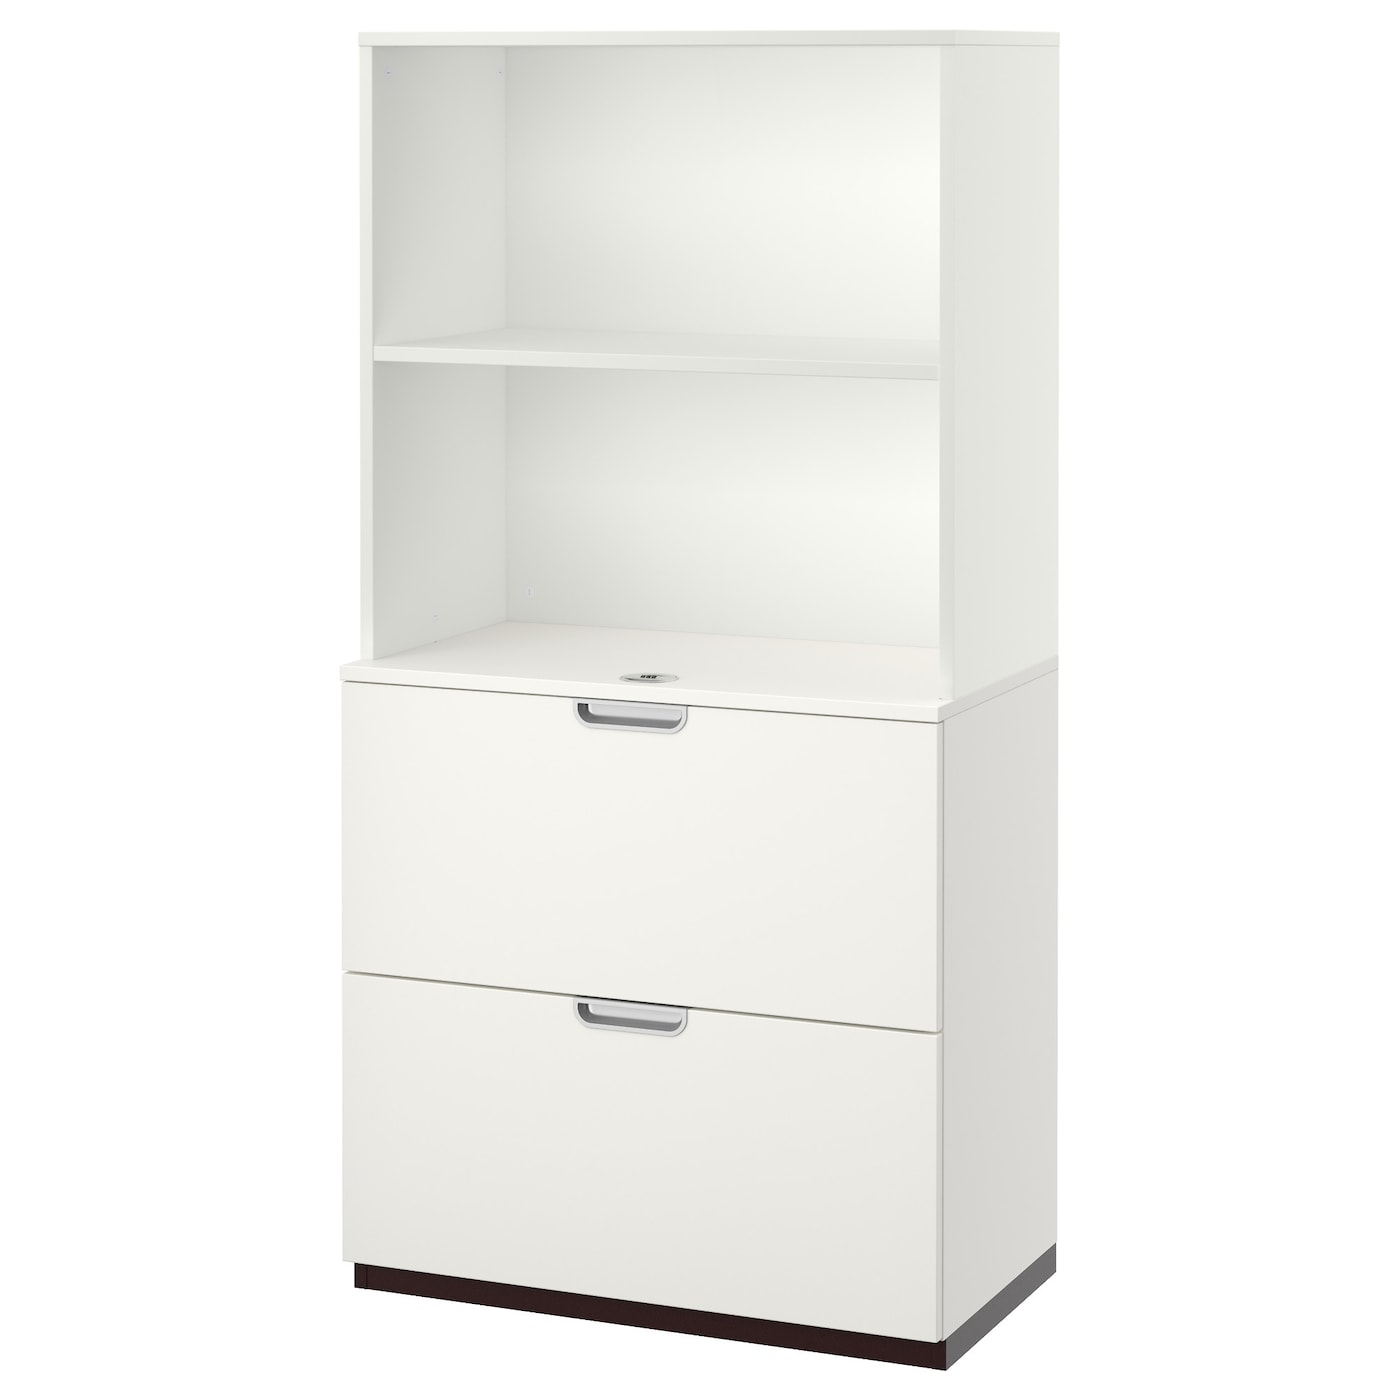 office storage home office storage ikea. Black Bedroom Furniture Sets. Home Design Ideas